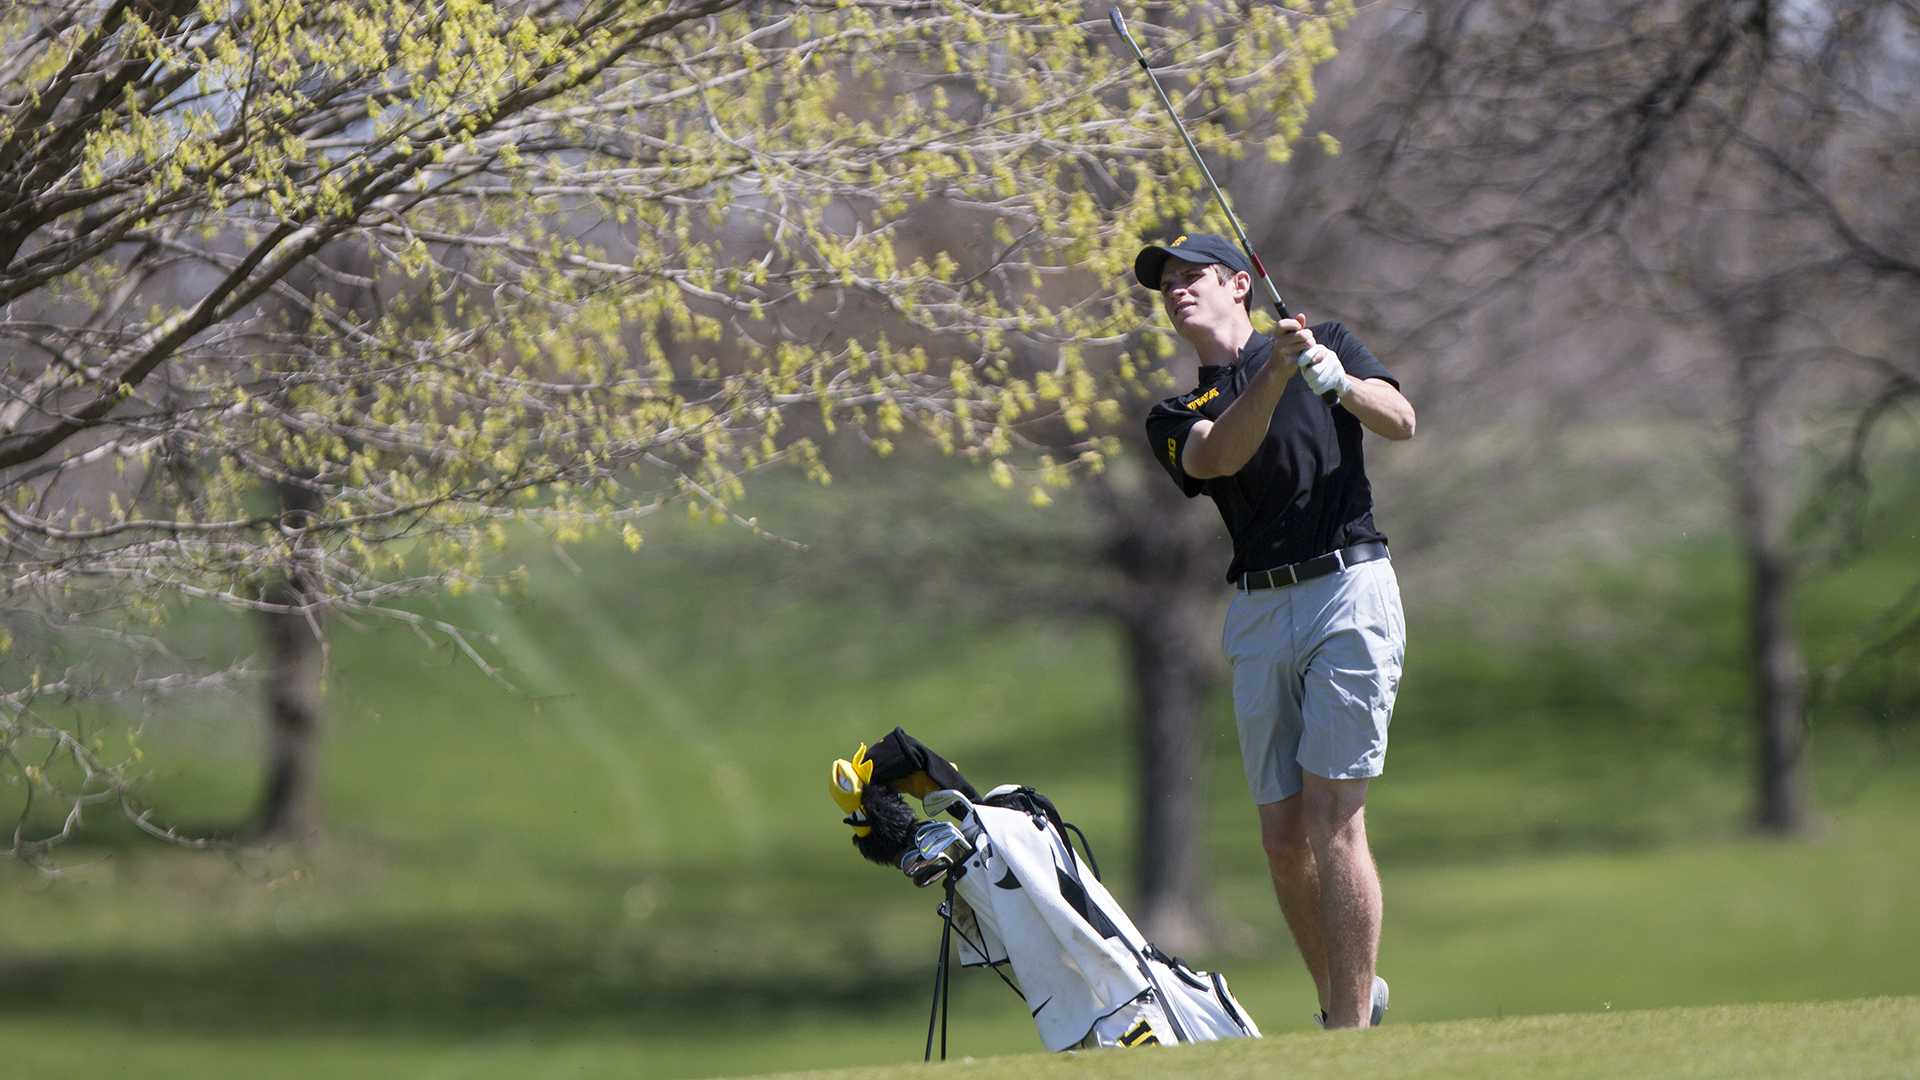 Iowa's Sam Meuret follows through a swing during the Hawkeye Invitational at Finkbine Golf Course on Sunday, April 16, 2017. The Hawkeyes finished second, behind Texas Tech, in the tournament after three rounds scoring 859 (-5; 289, 285, 285). (The Daily Iowan/Joseph Cress)